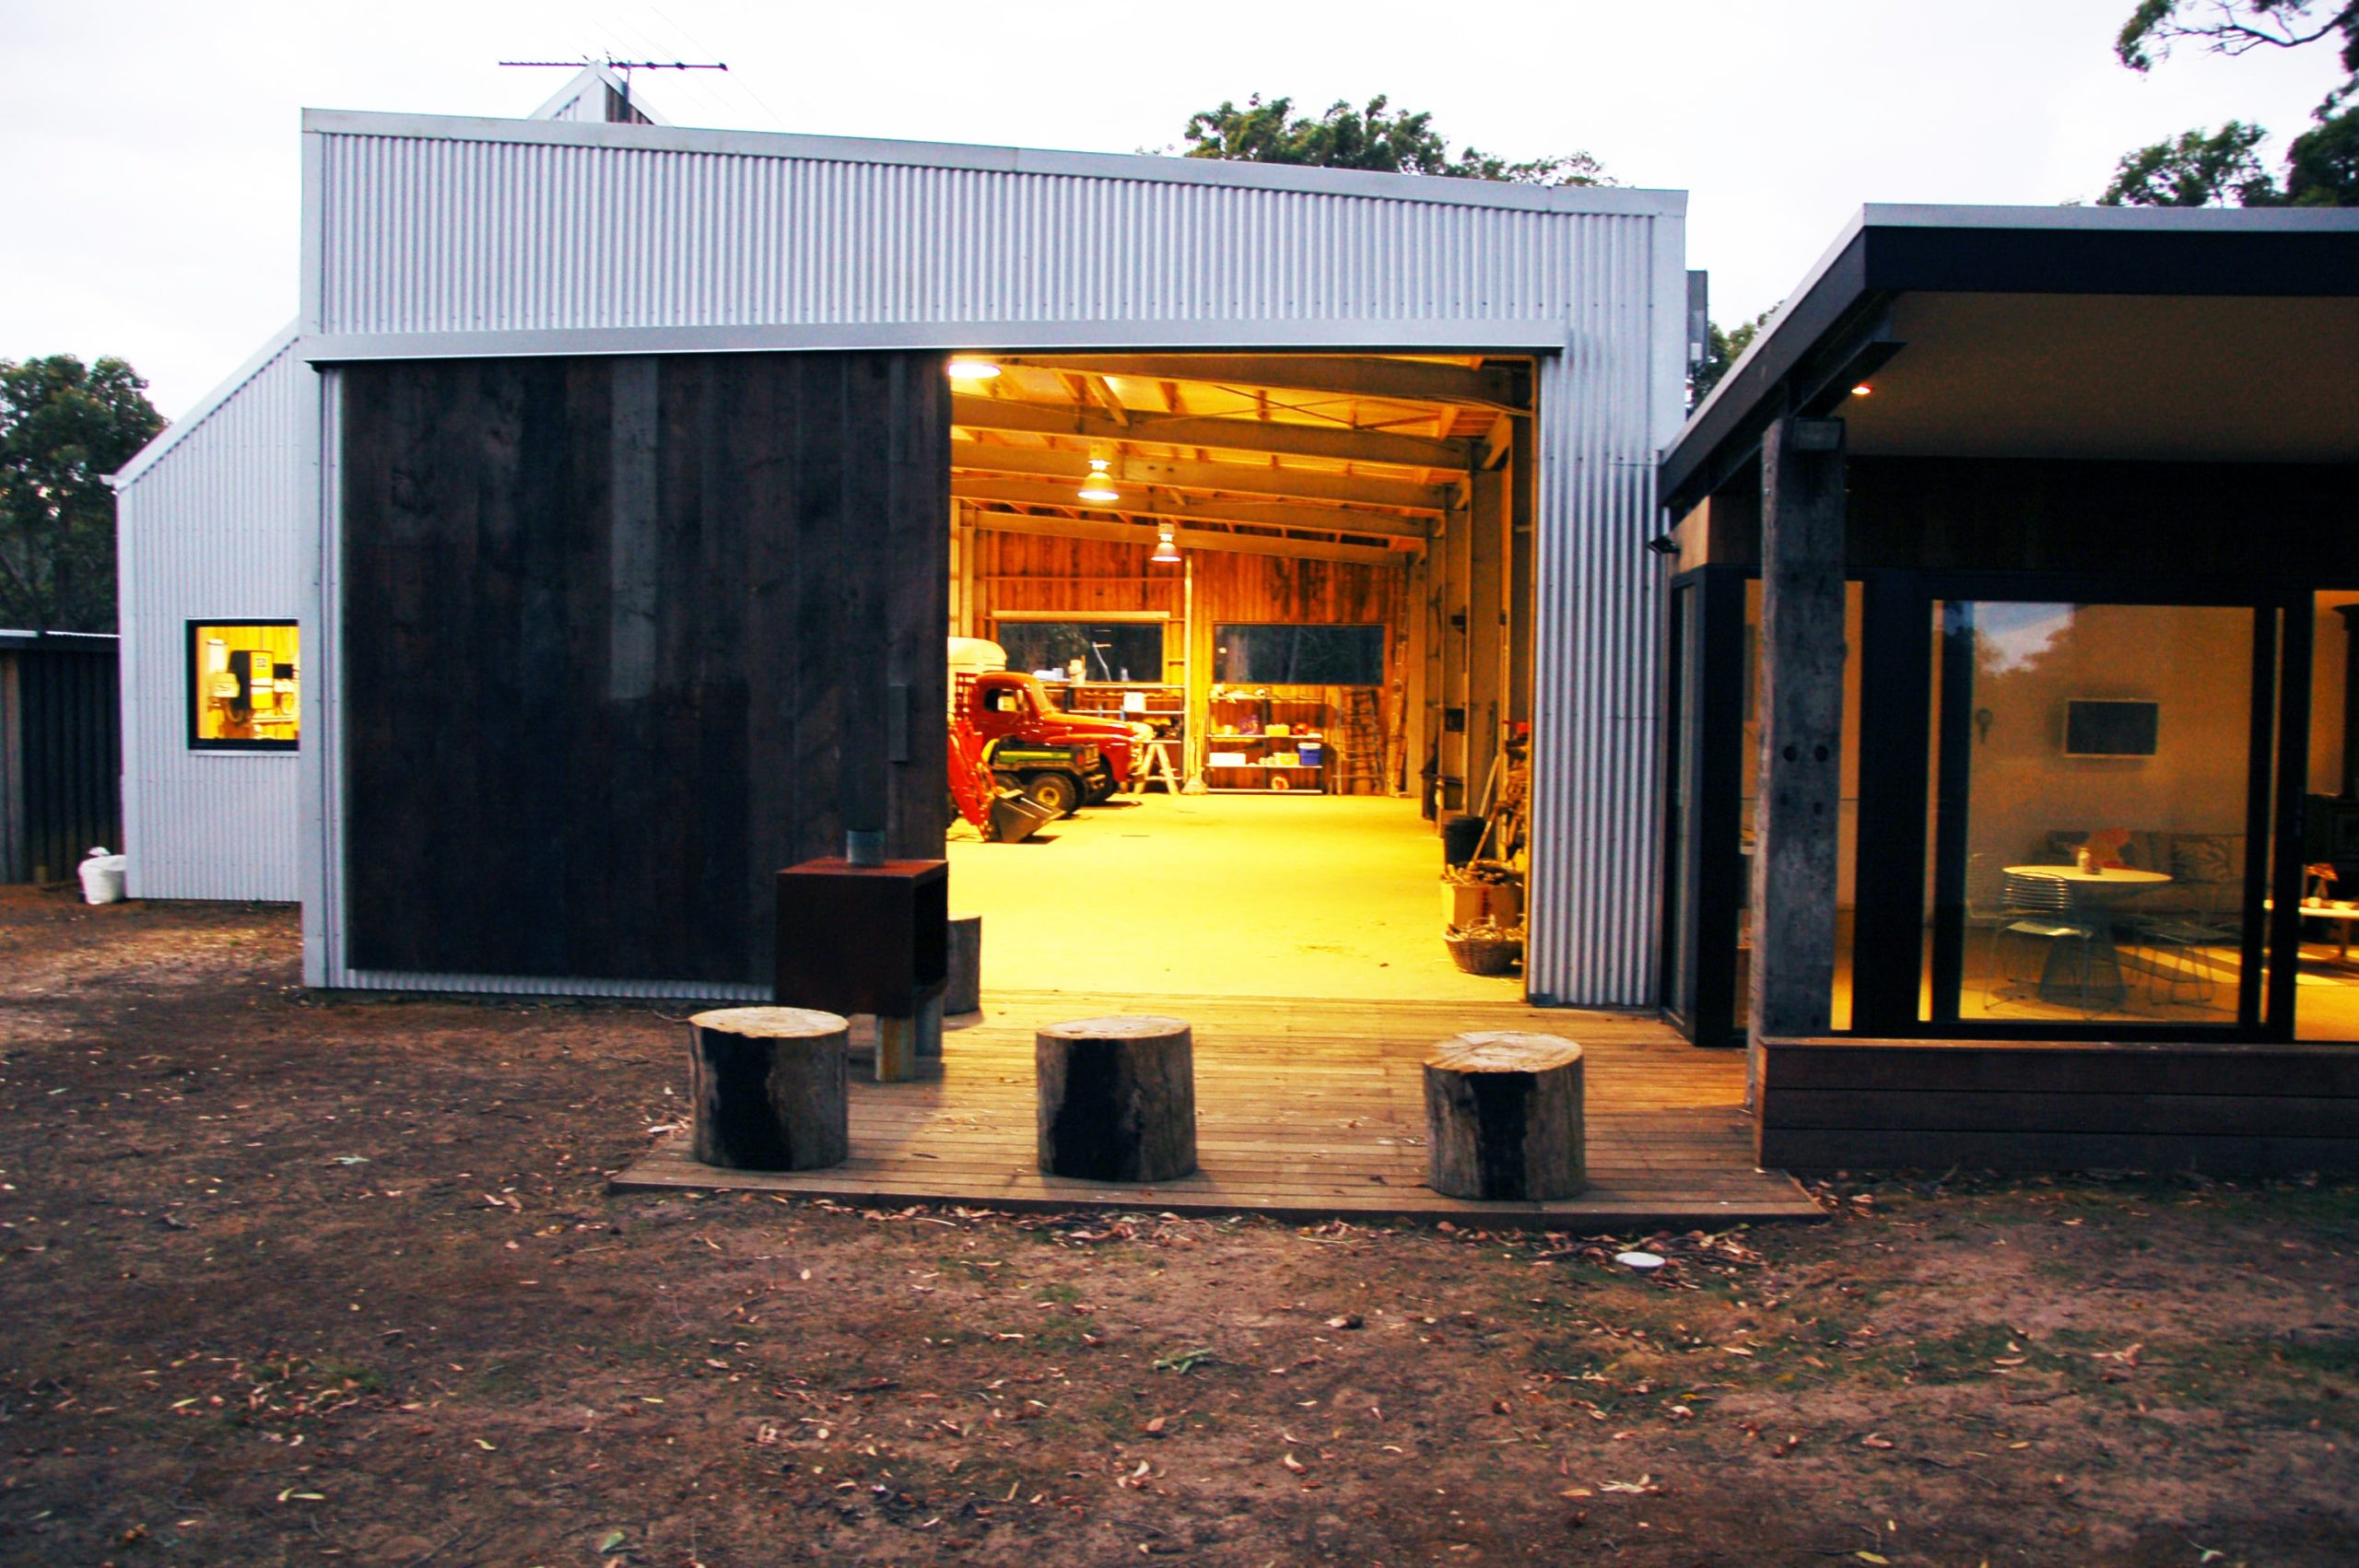 The sitting area at the back of the garage and shed has a wooden deck flooring that leads the way back inside and also to the patio on the side.